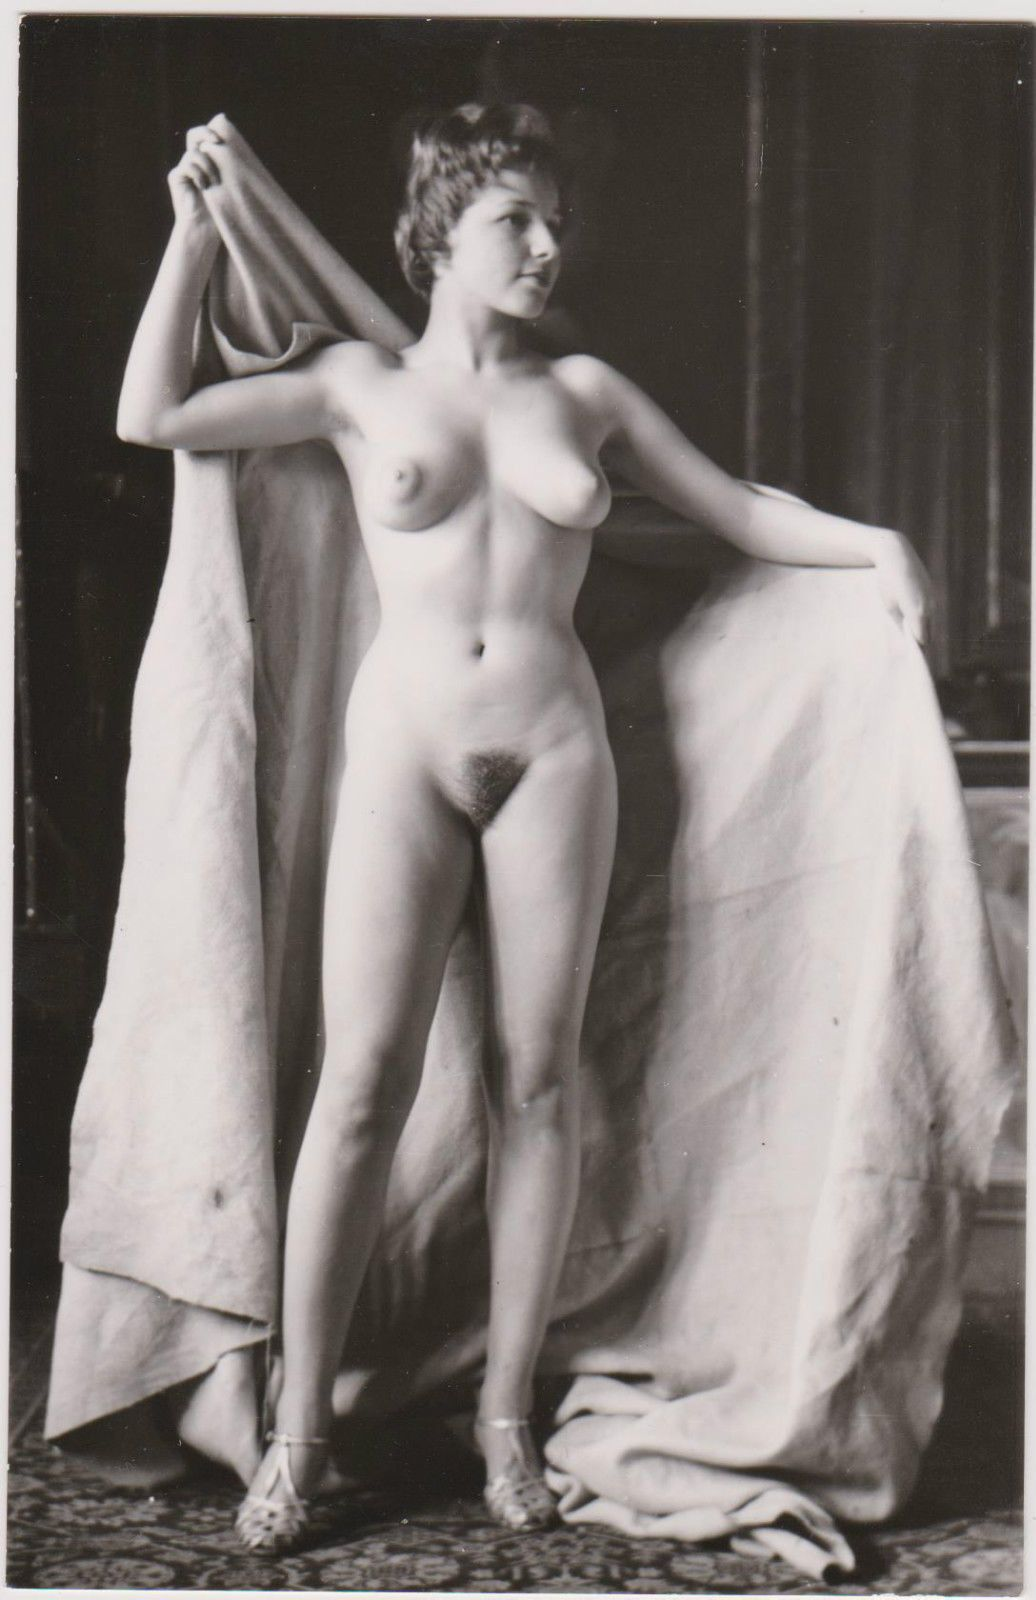 Pin By Rick On Erotica  Pinterest  Nude, Vintage And Vintage Beauty-9710